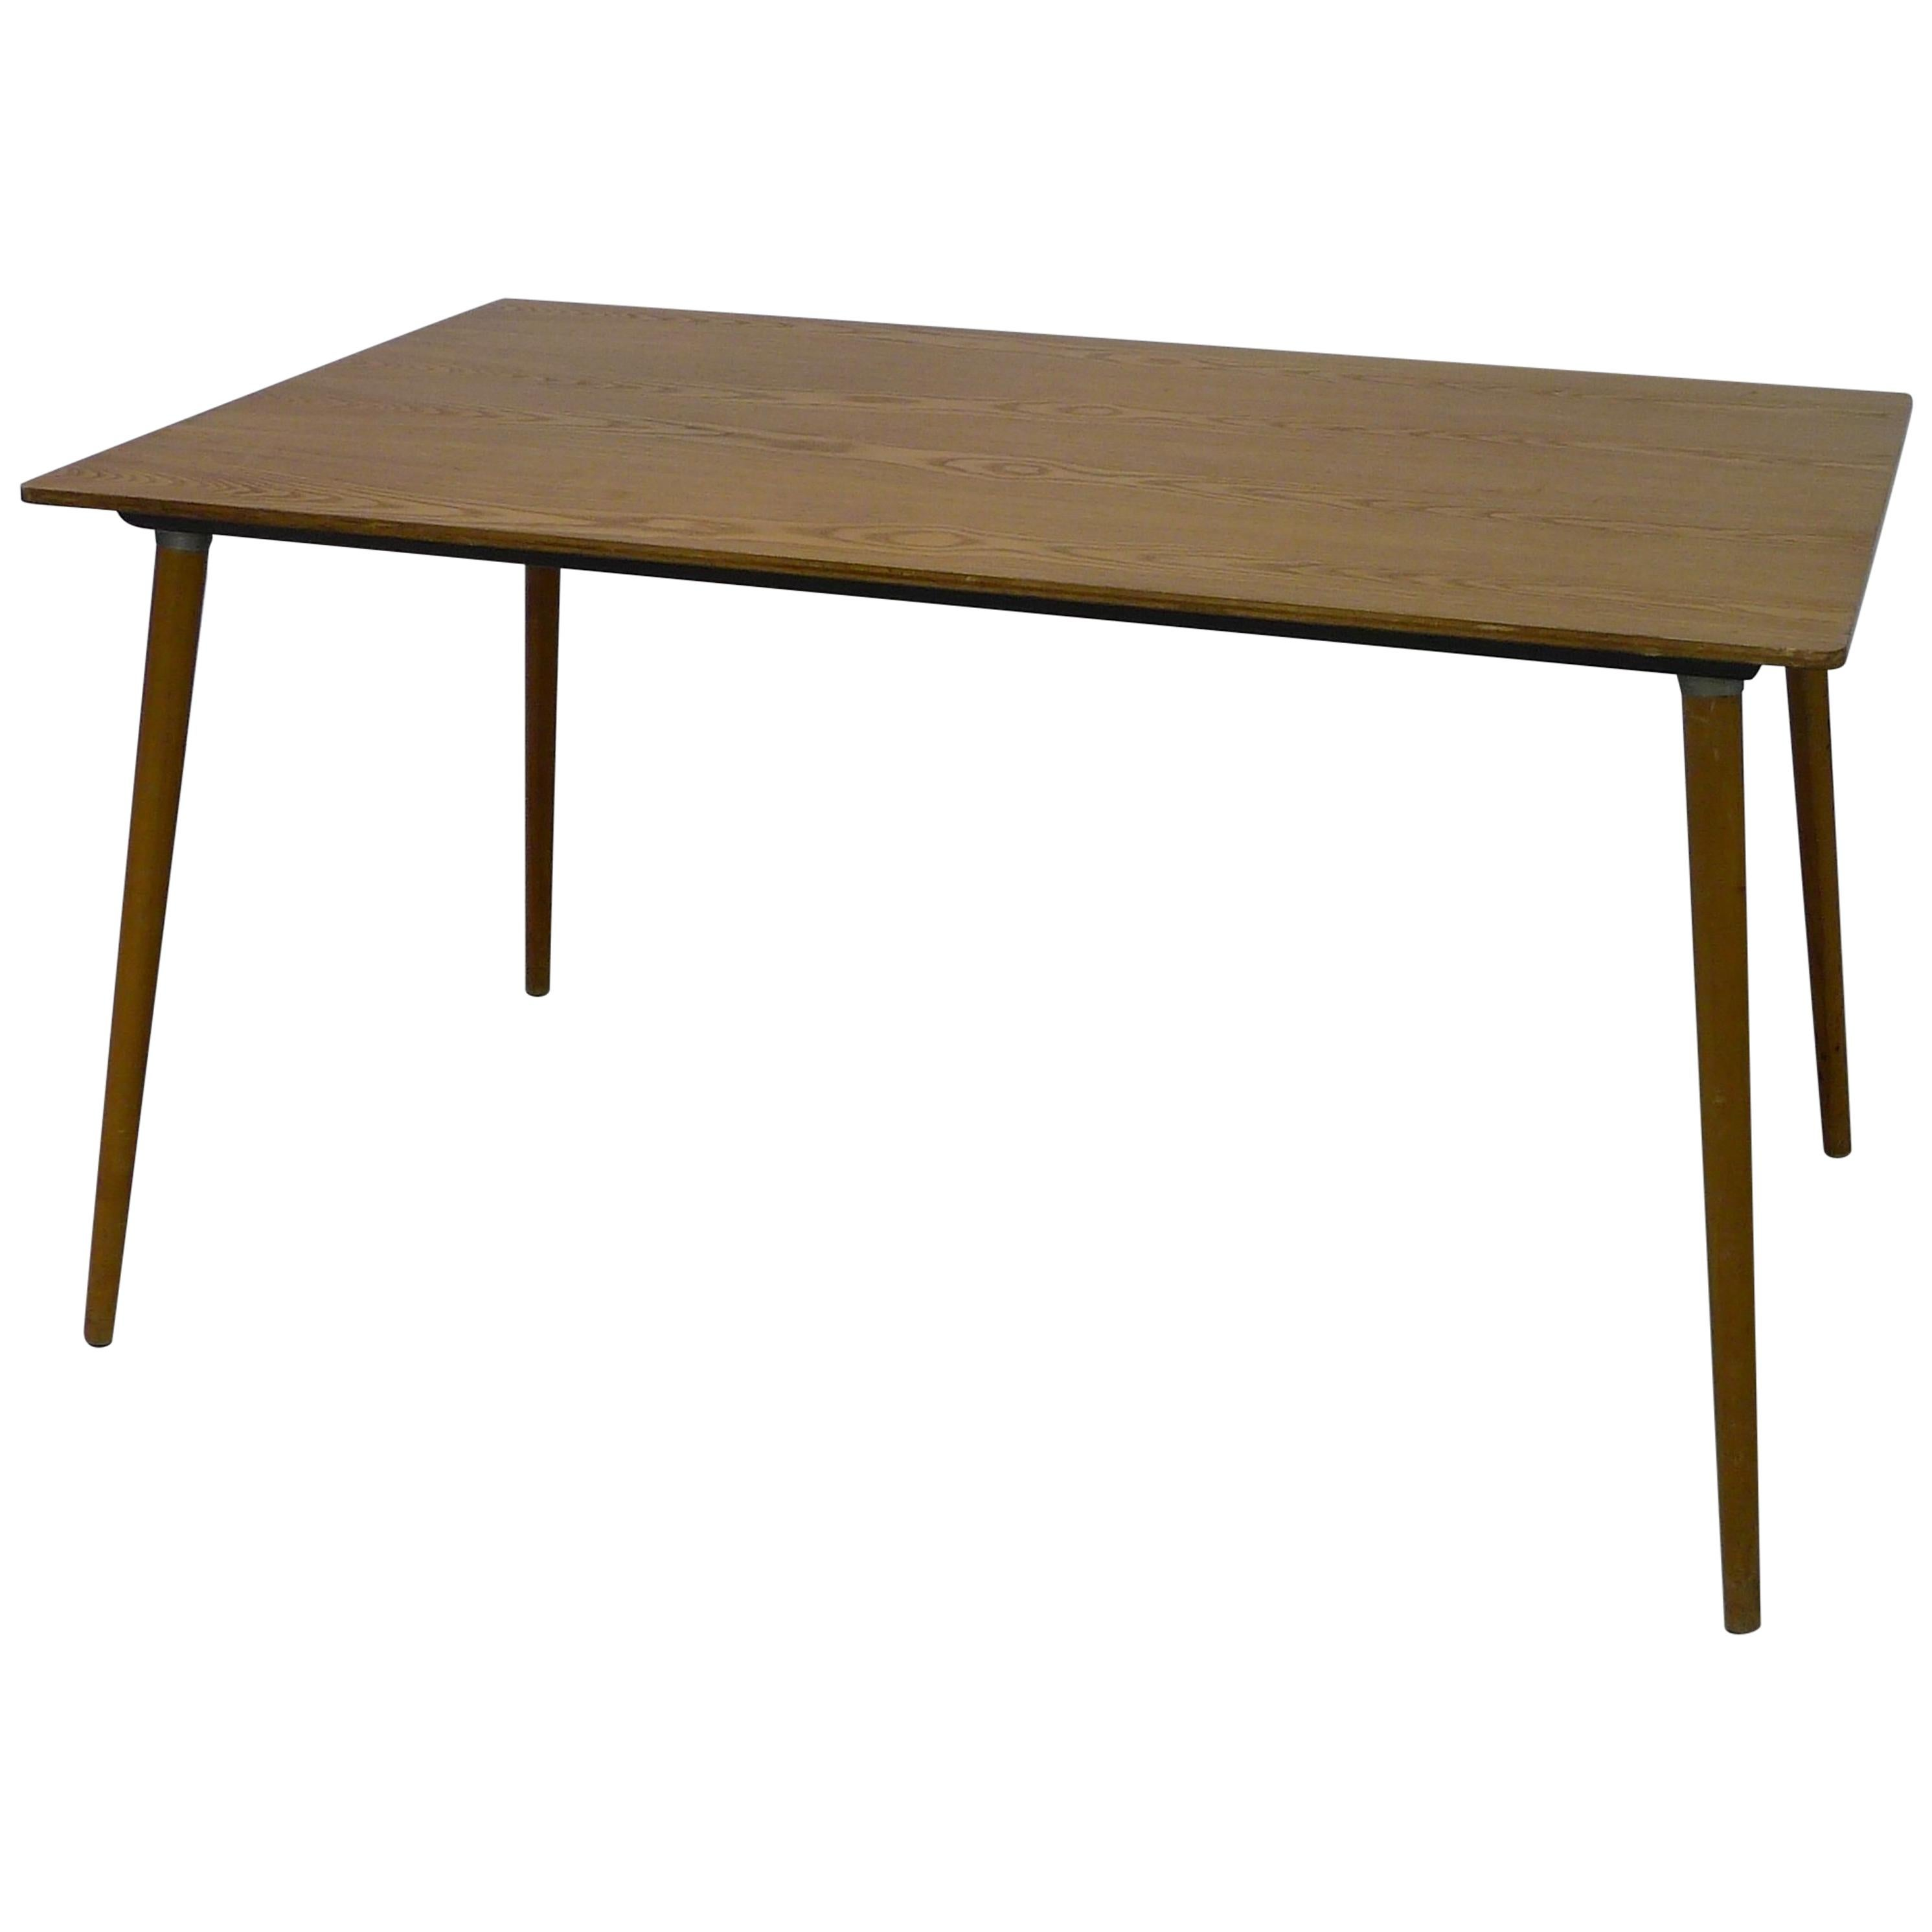 Eames Dtw 3 Birch Dining Table Circa 1950 Herman Miller Production For At 1stdibs